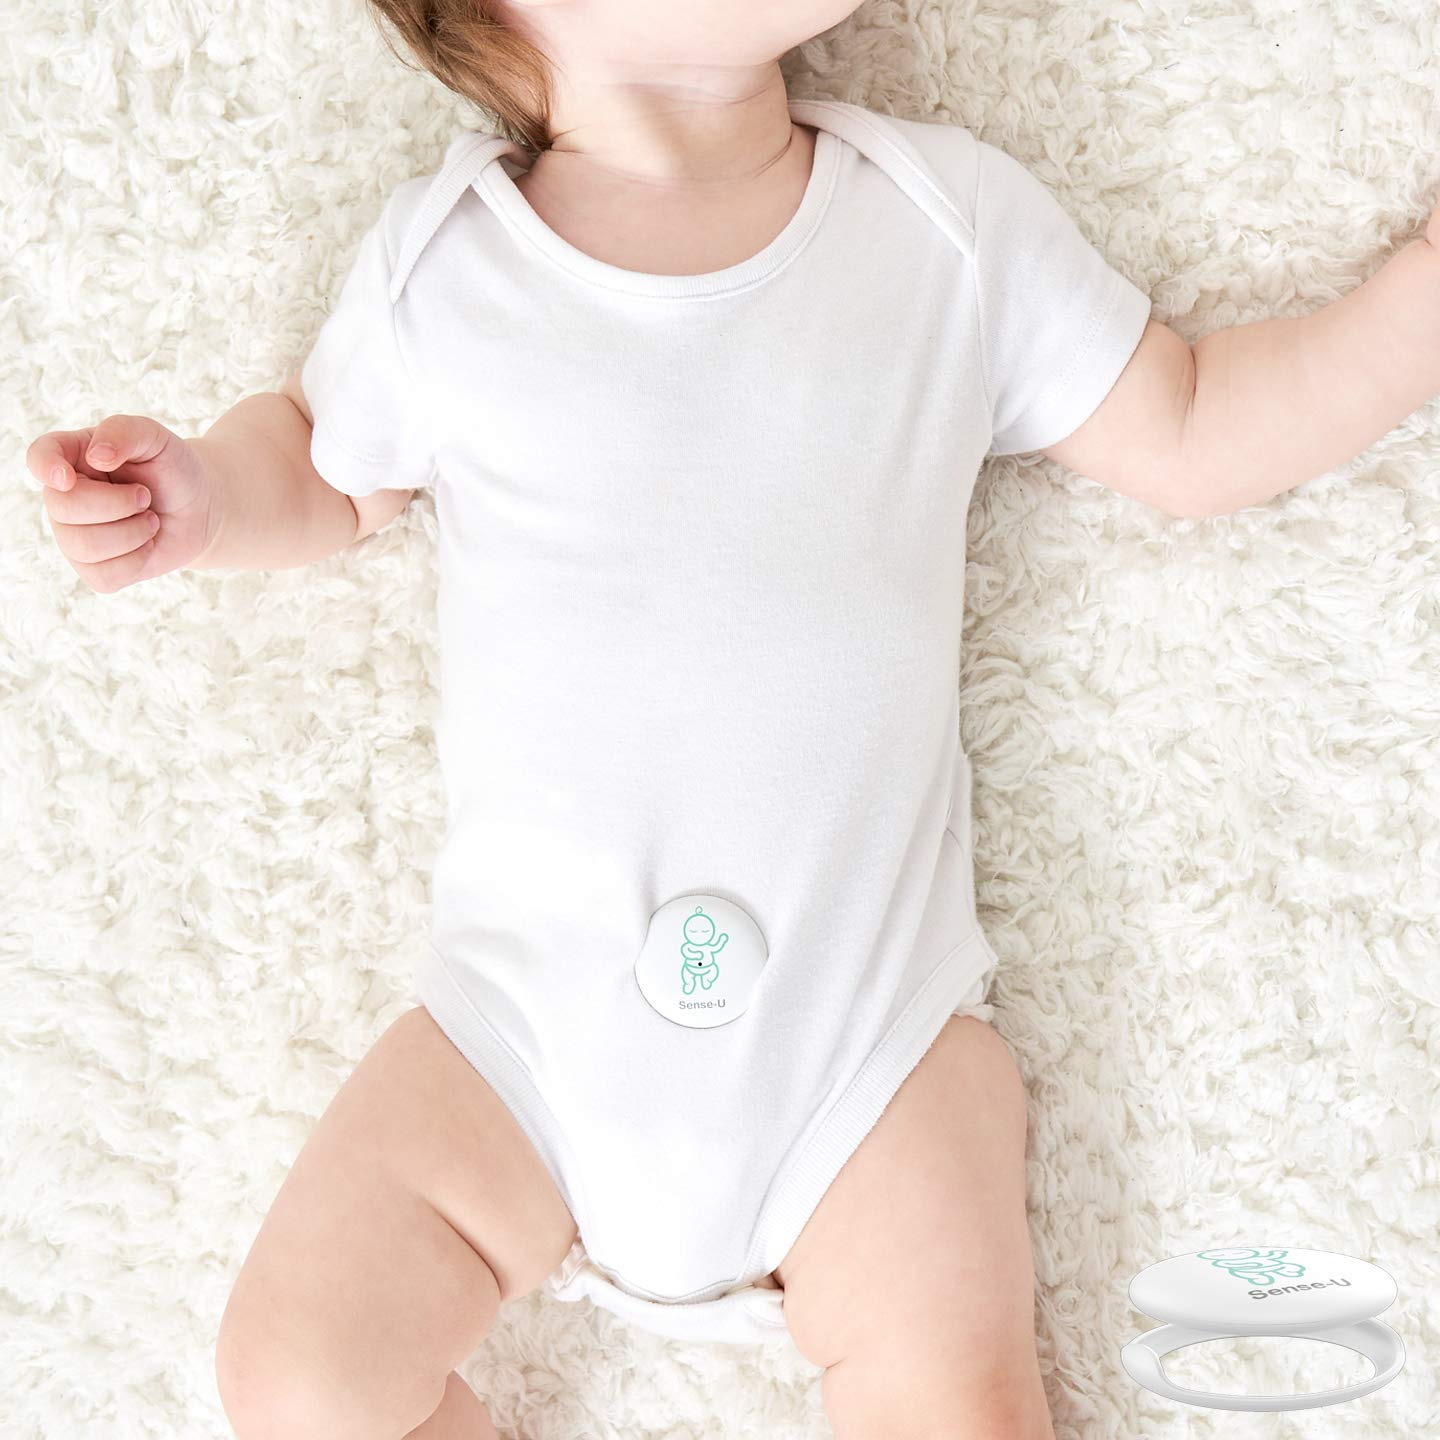 Sense-U Baby Breathing & Rollover Movement Monitor with a Free Swaddle